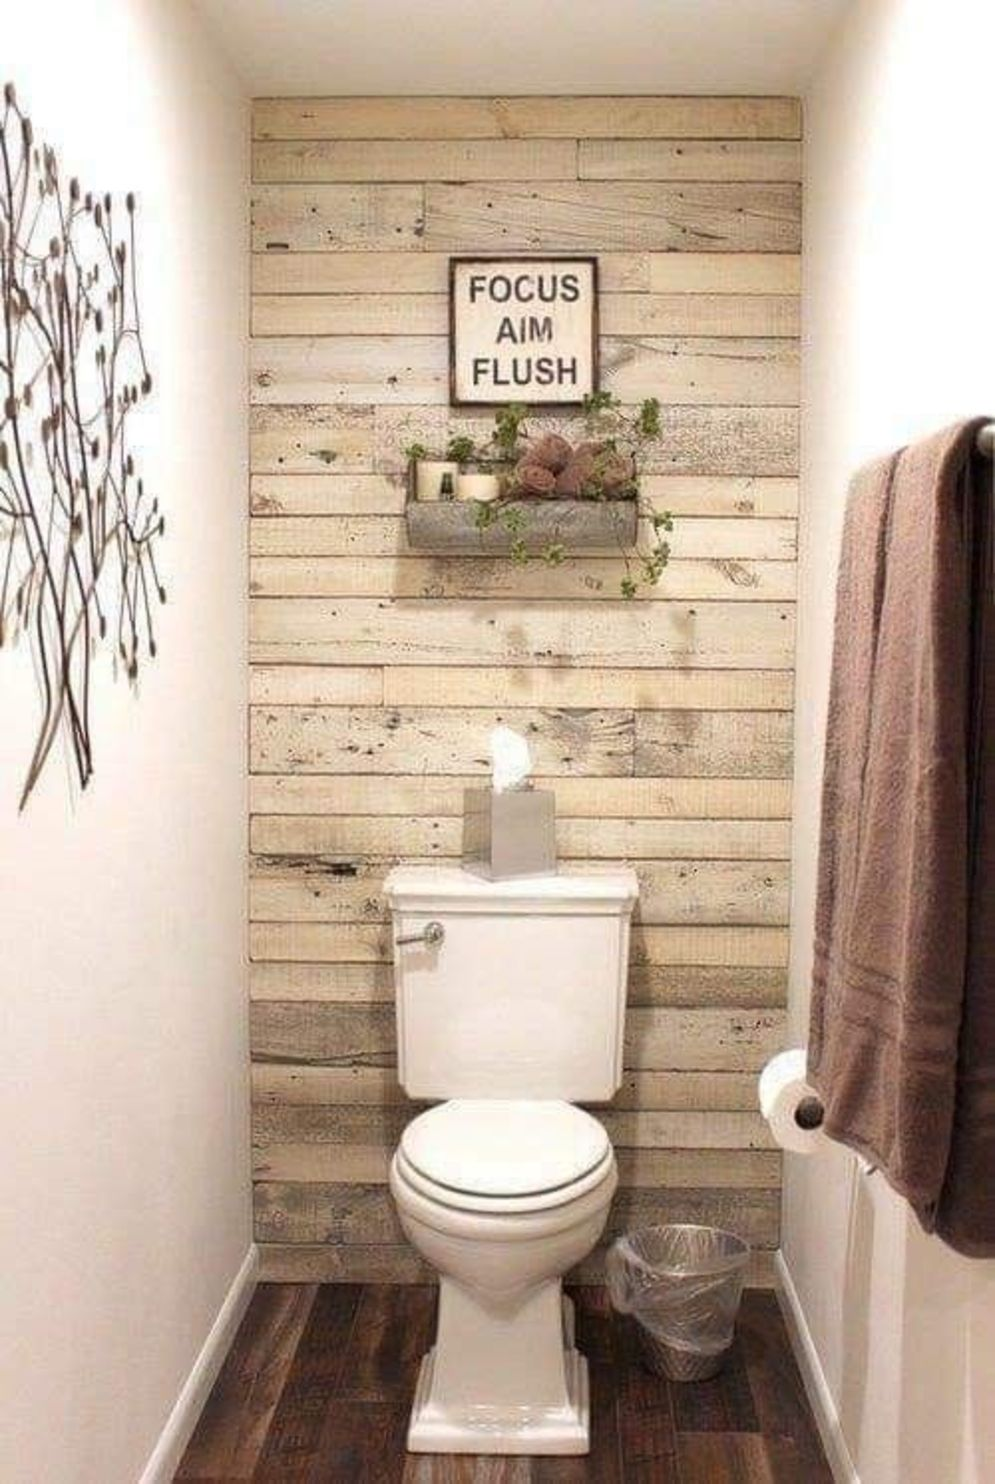 Timeless bathroom designs with wood accents enhancing more natural vibes Image 24